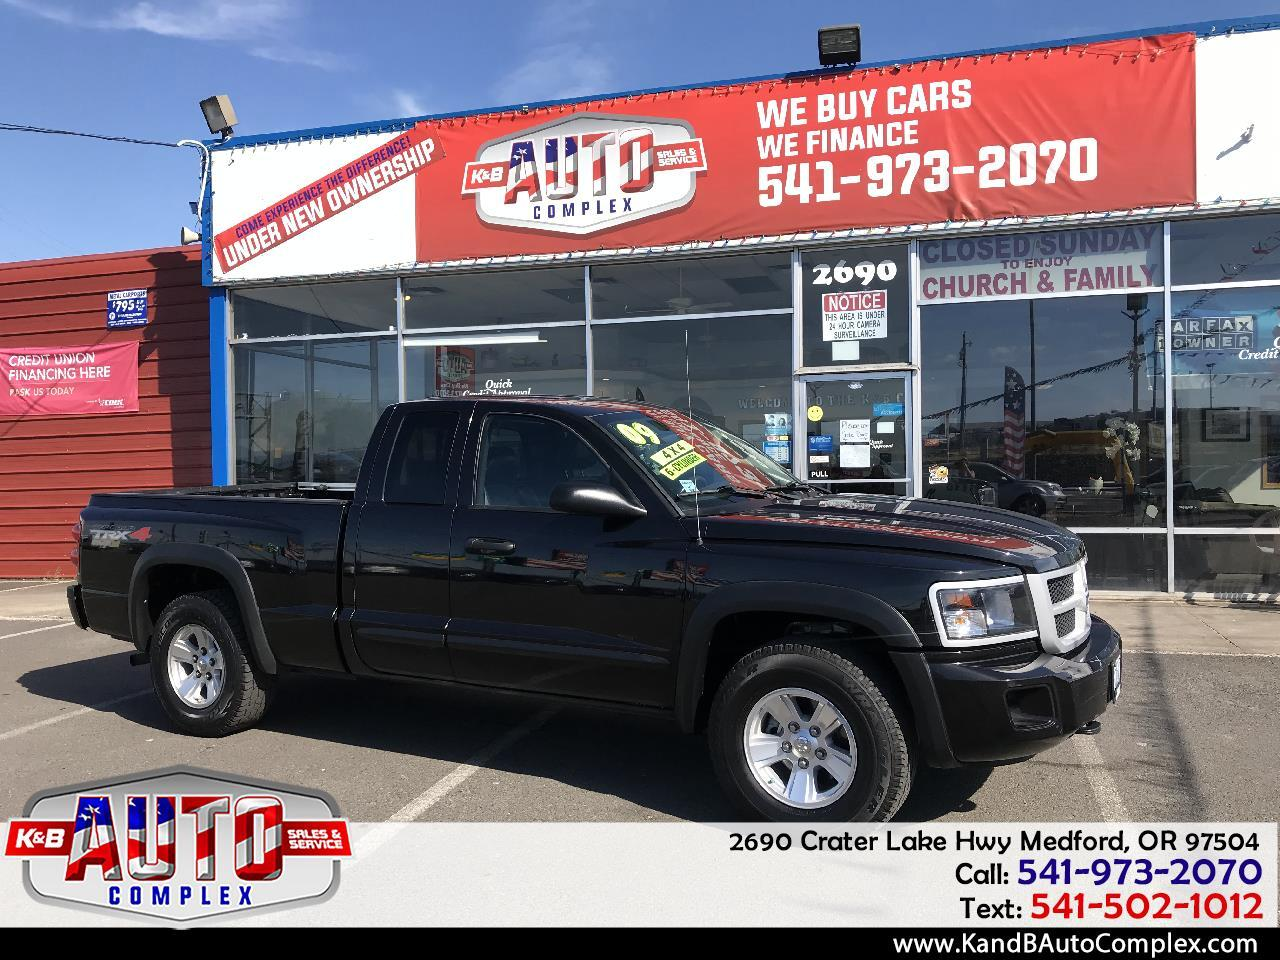 2009 Dodge Dakota 4WD Ext Cab TRX